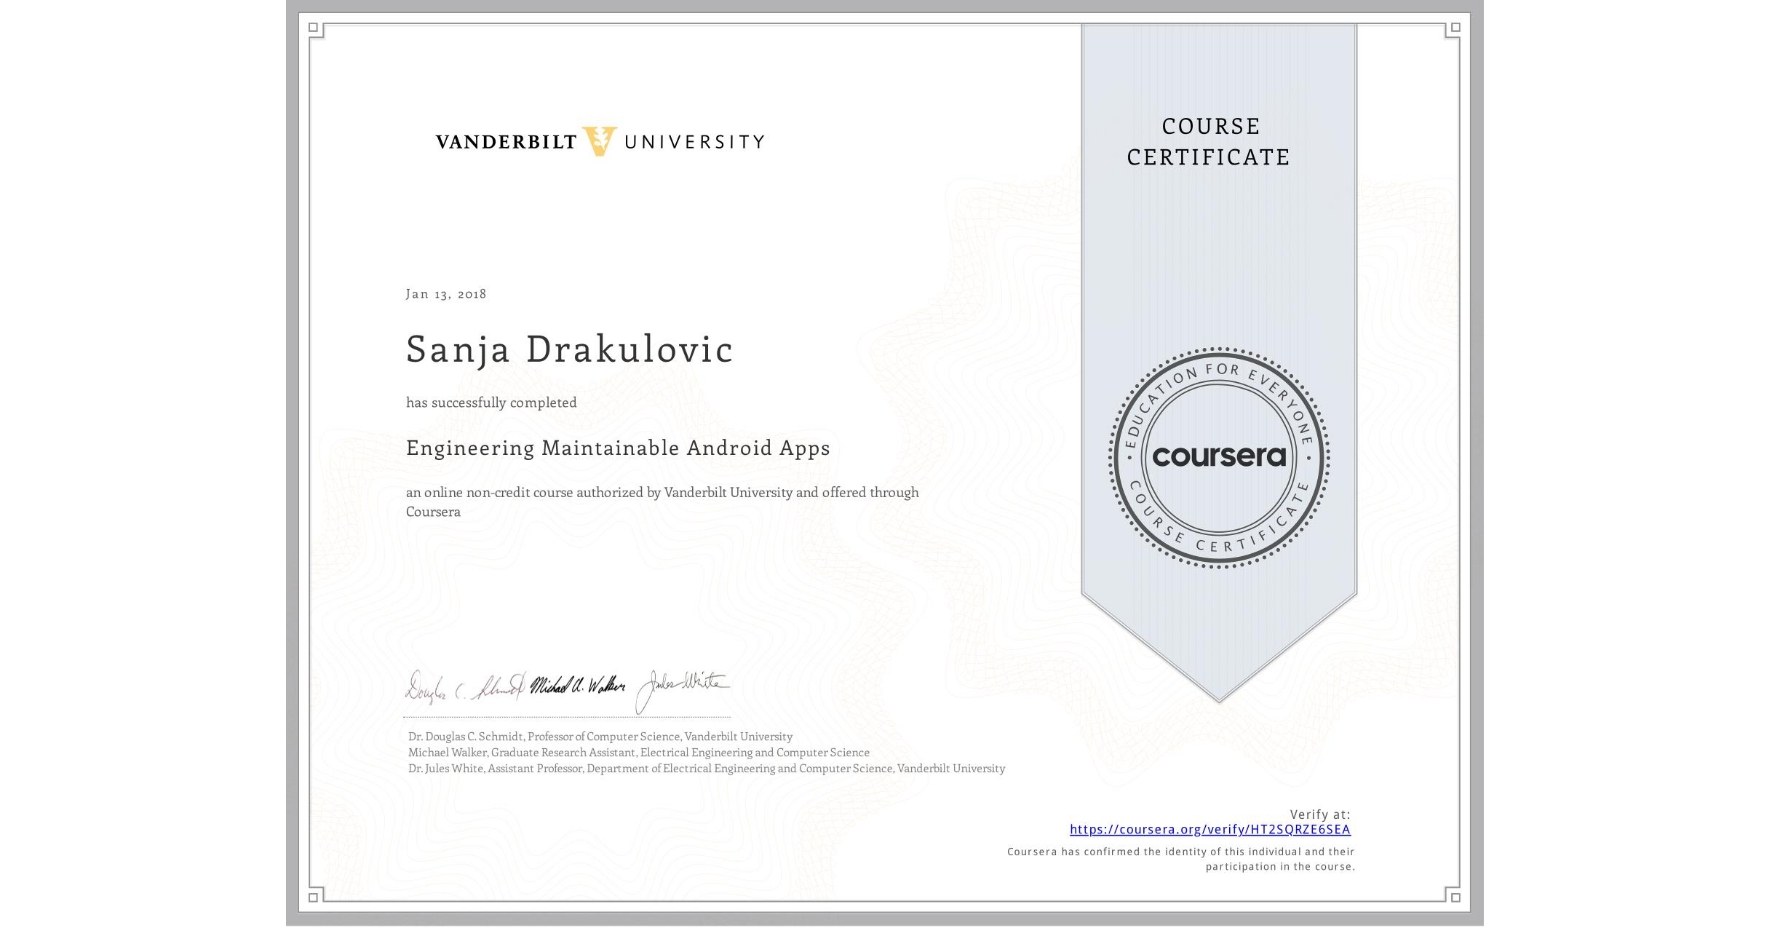 View certificate for Sanja Drakulovic, Engineering Maintainable Android Apps, an online non-credit course authorized by Vanderbilt University and offered through Coursera